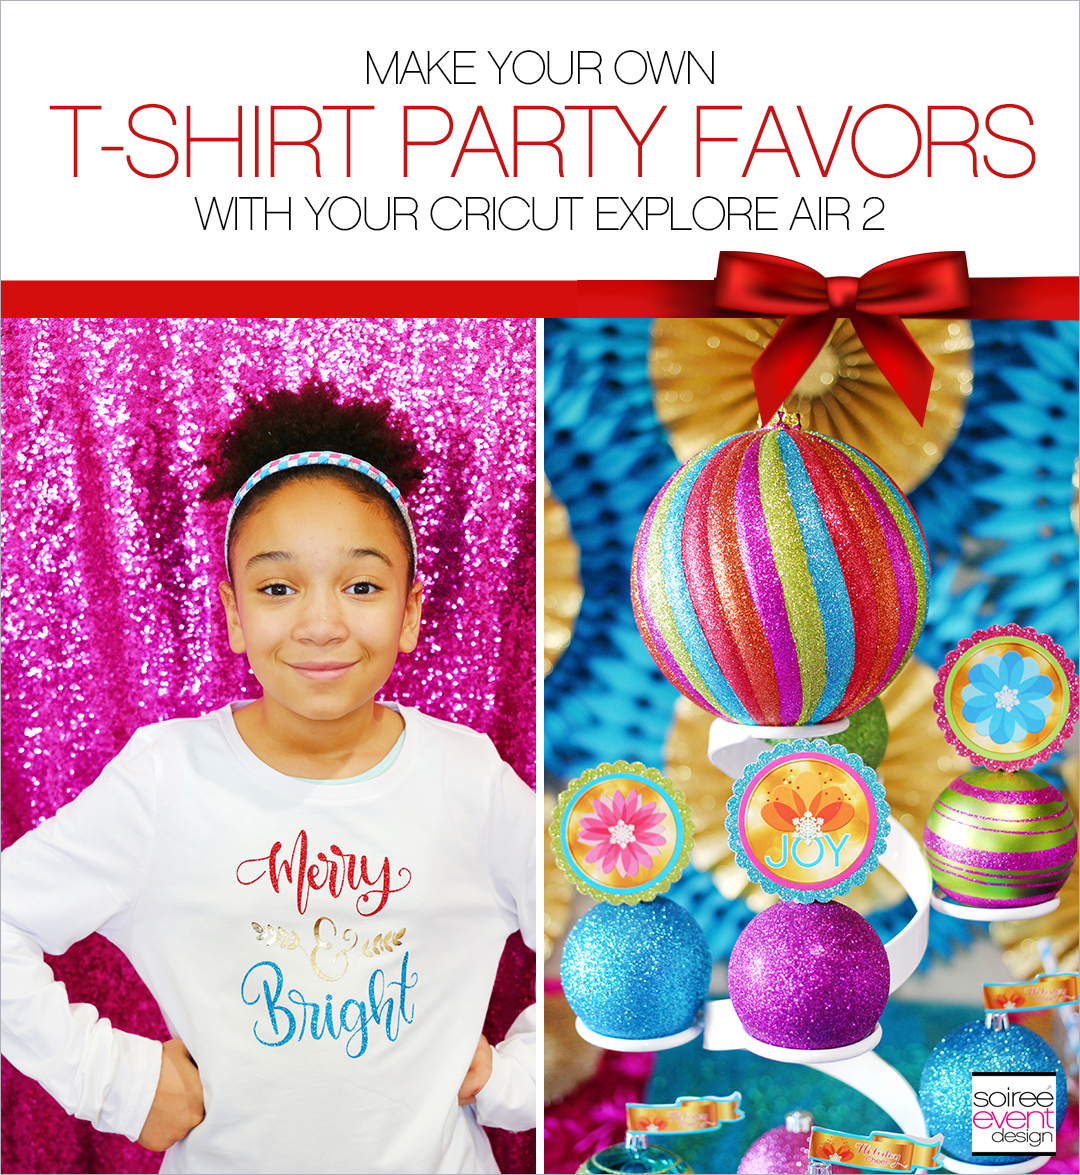 T-shirt Party Favors with Cricut